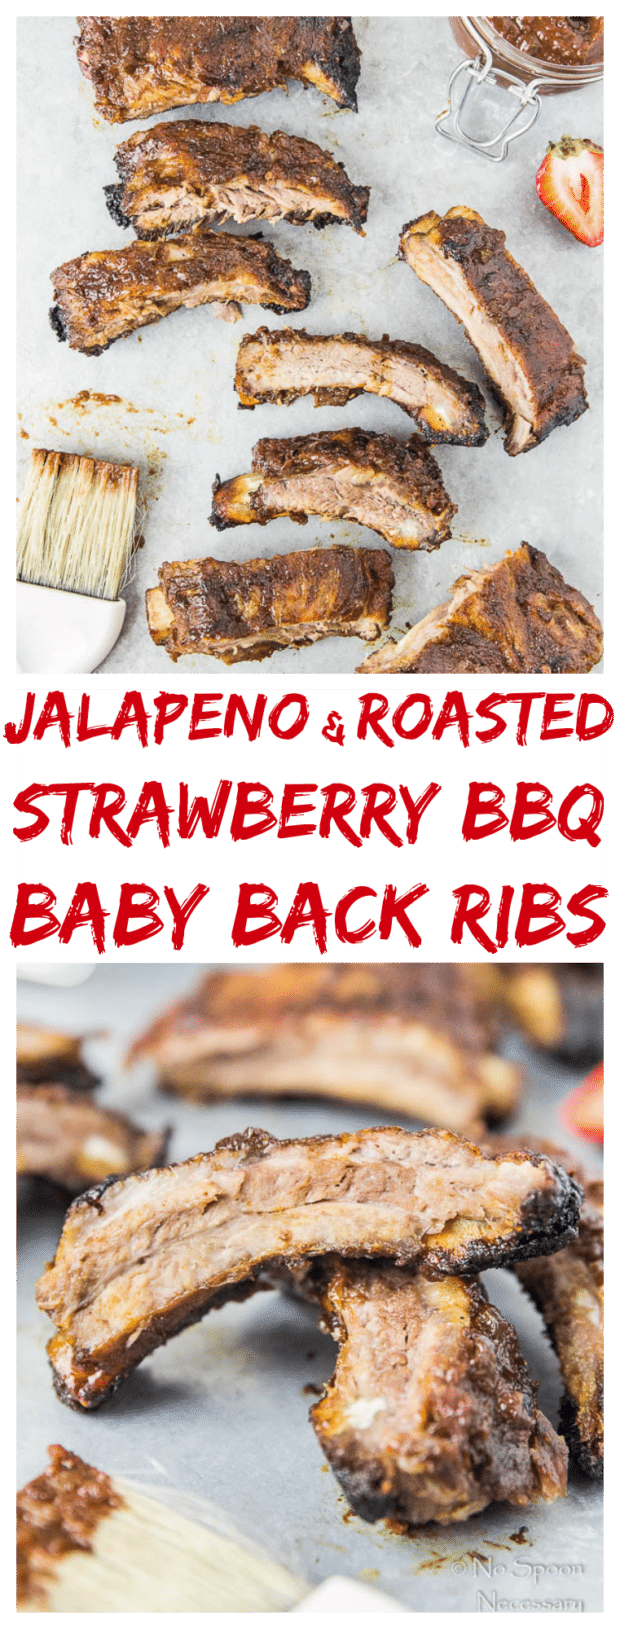 Jalapeno & Roasted Strawberry BBQ Sauce Baby Back Ribs-long pin4